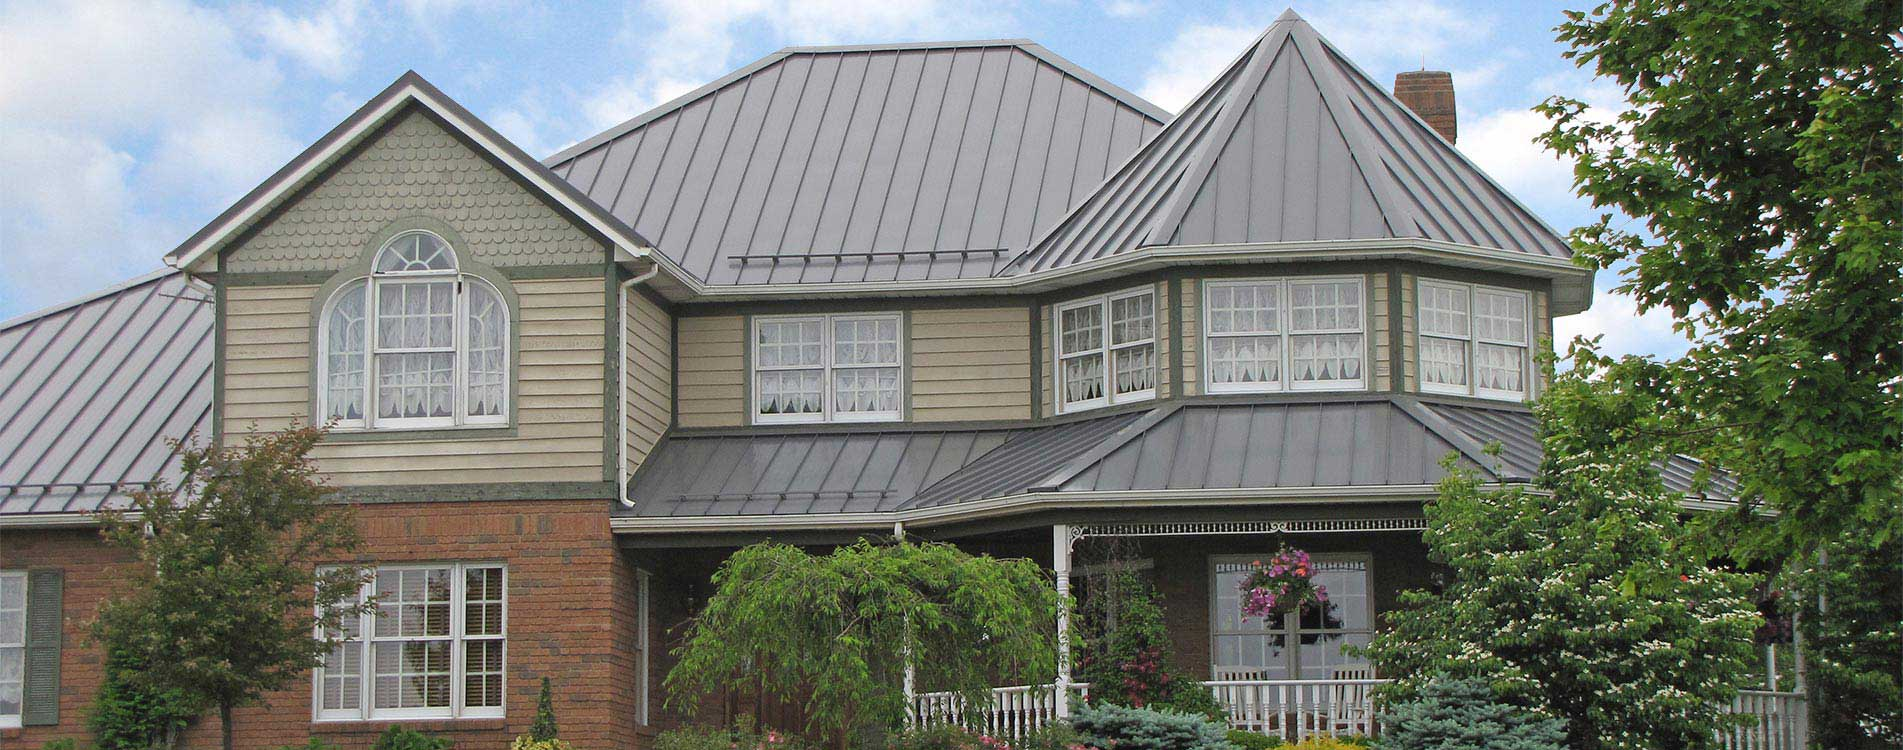 Ohio metal roofing | Metal siding and metal trim for new homes